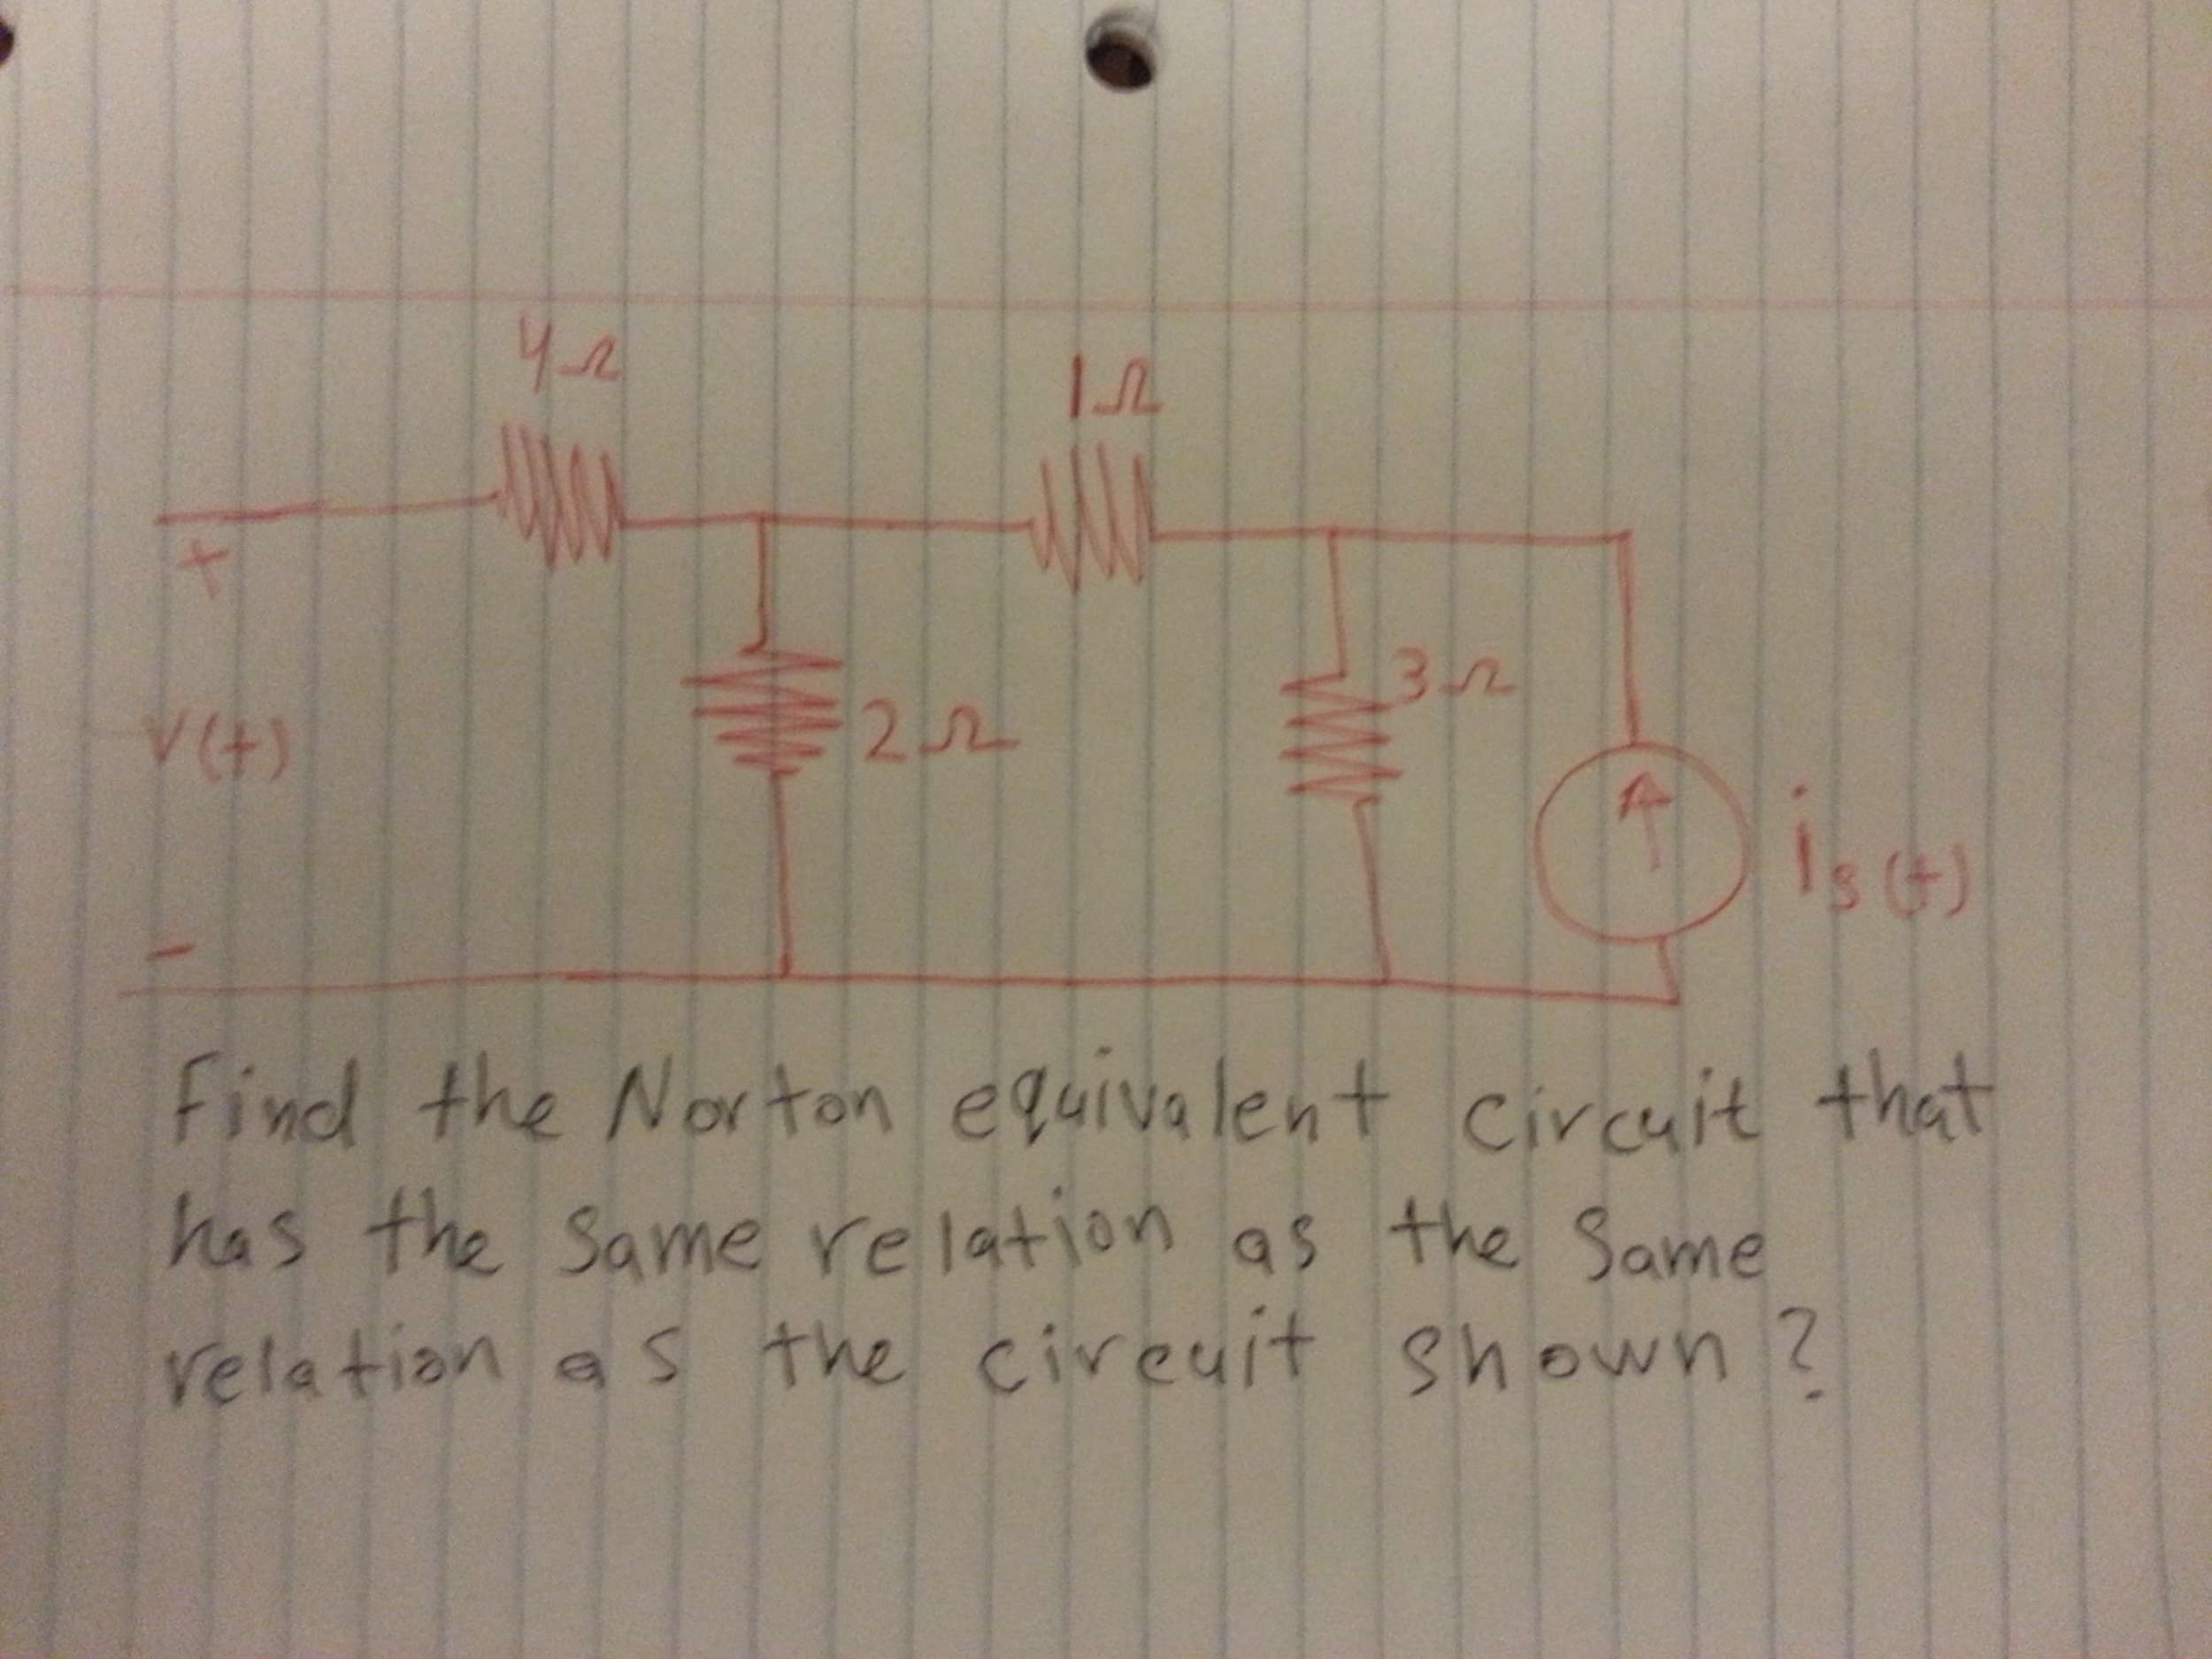 Find the Norton equivalent circuit that has the sa